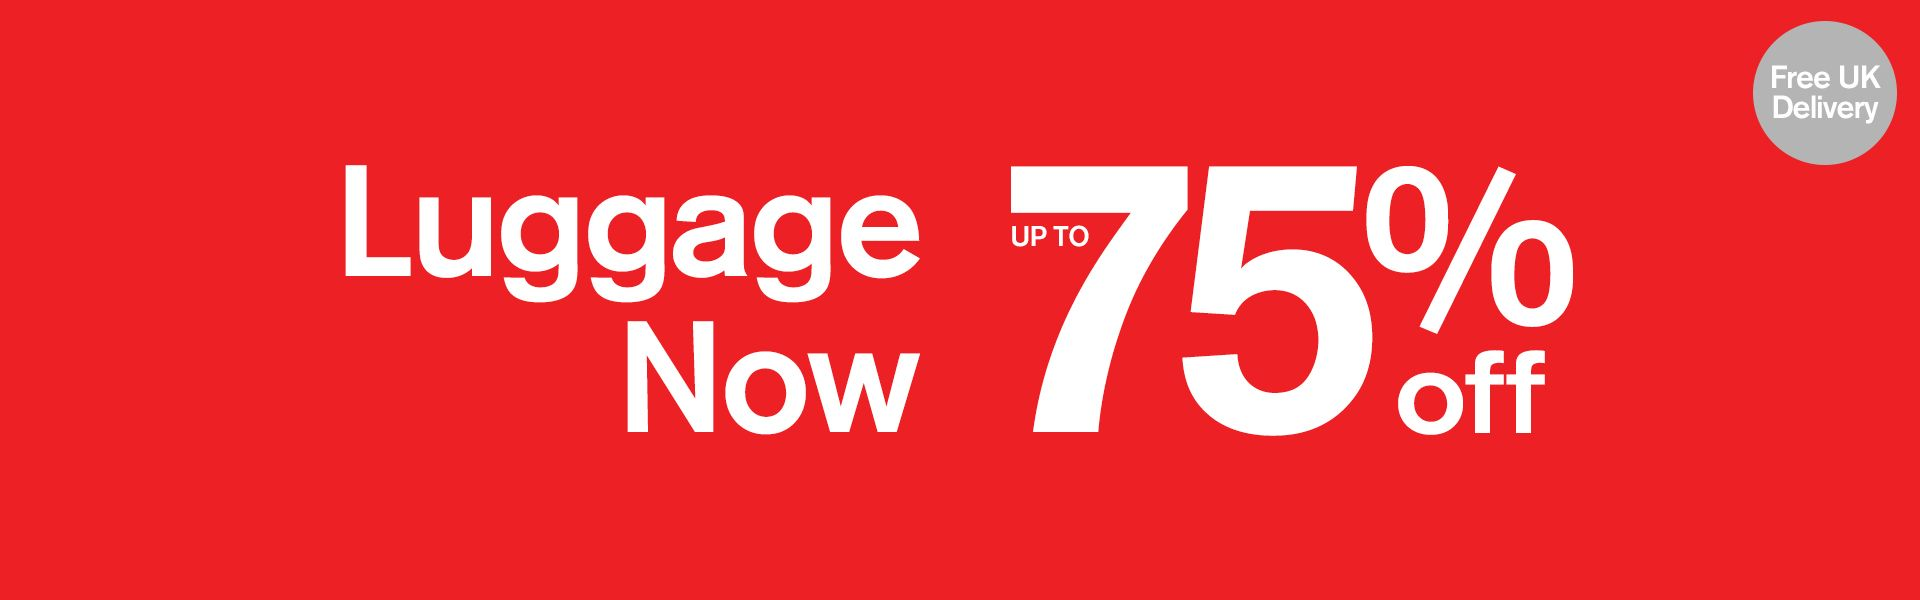 Luggage now Up to 75% off Free UK Delivery